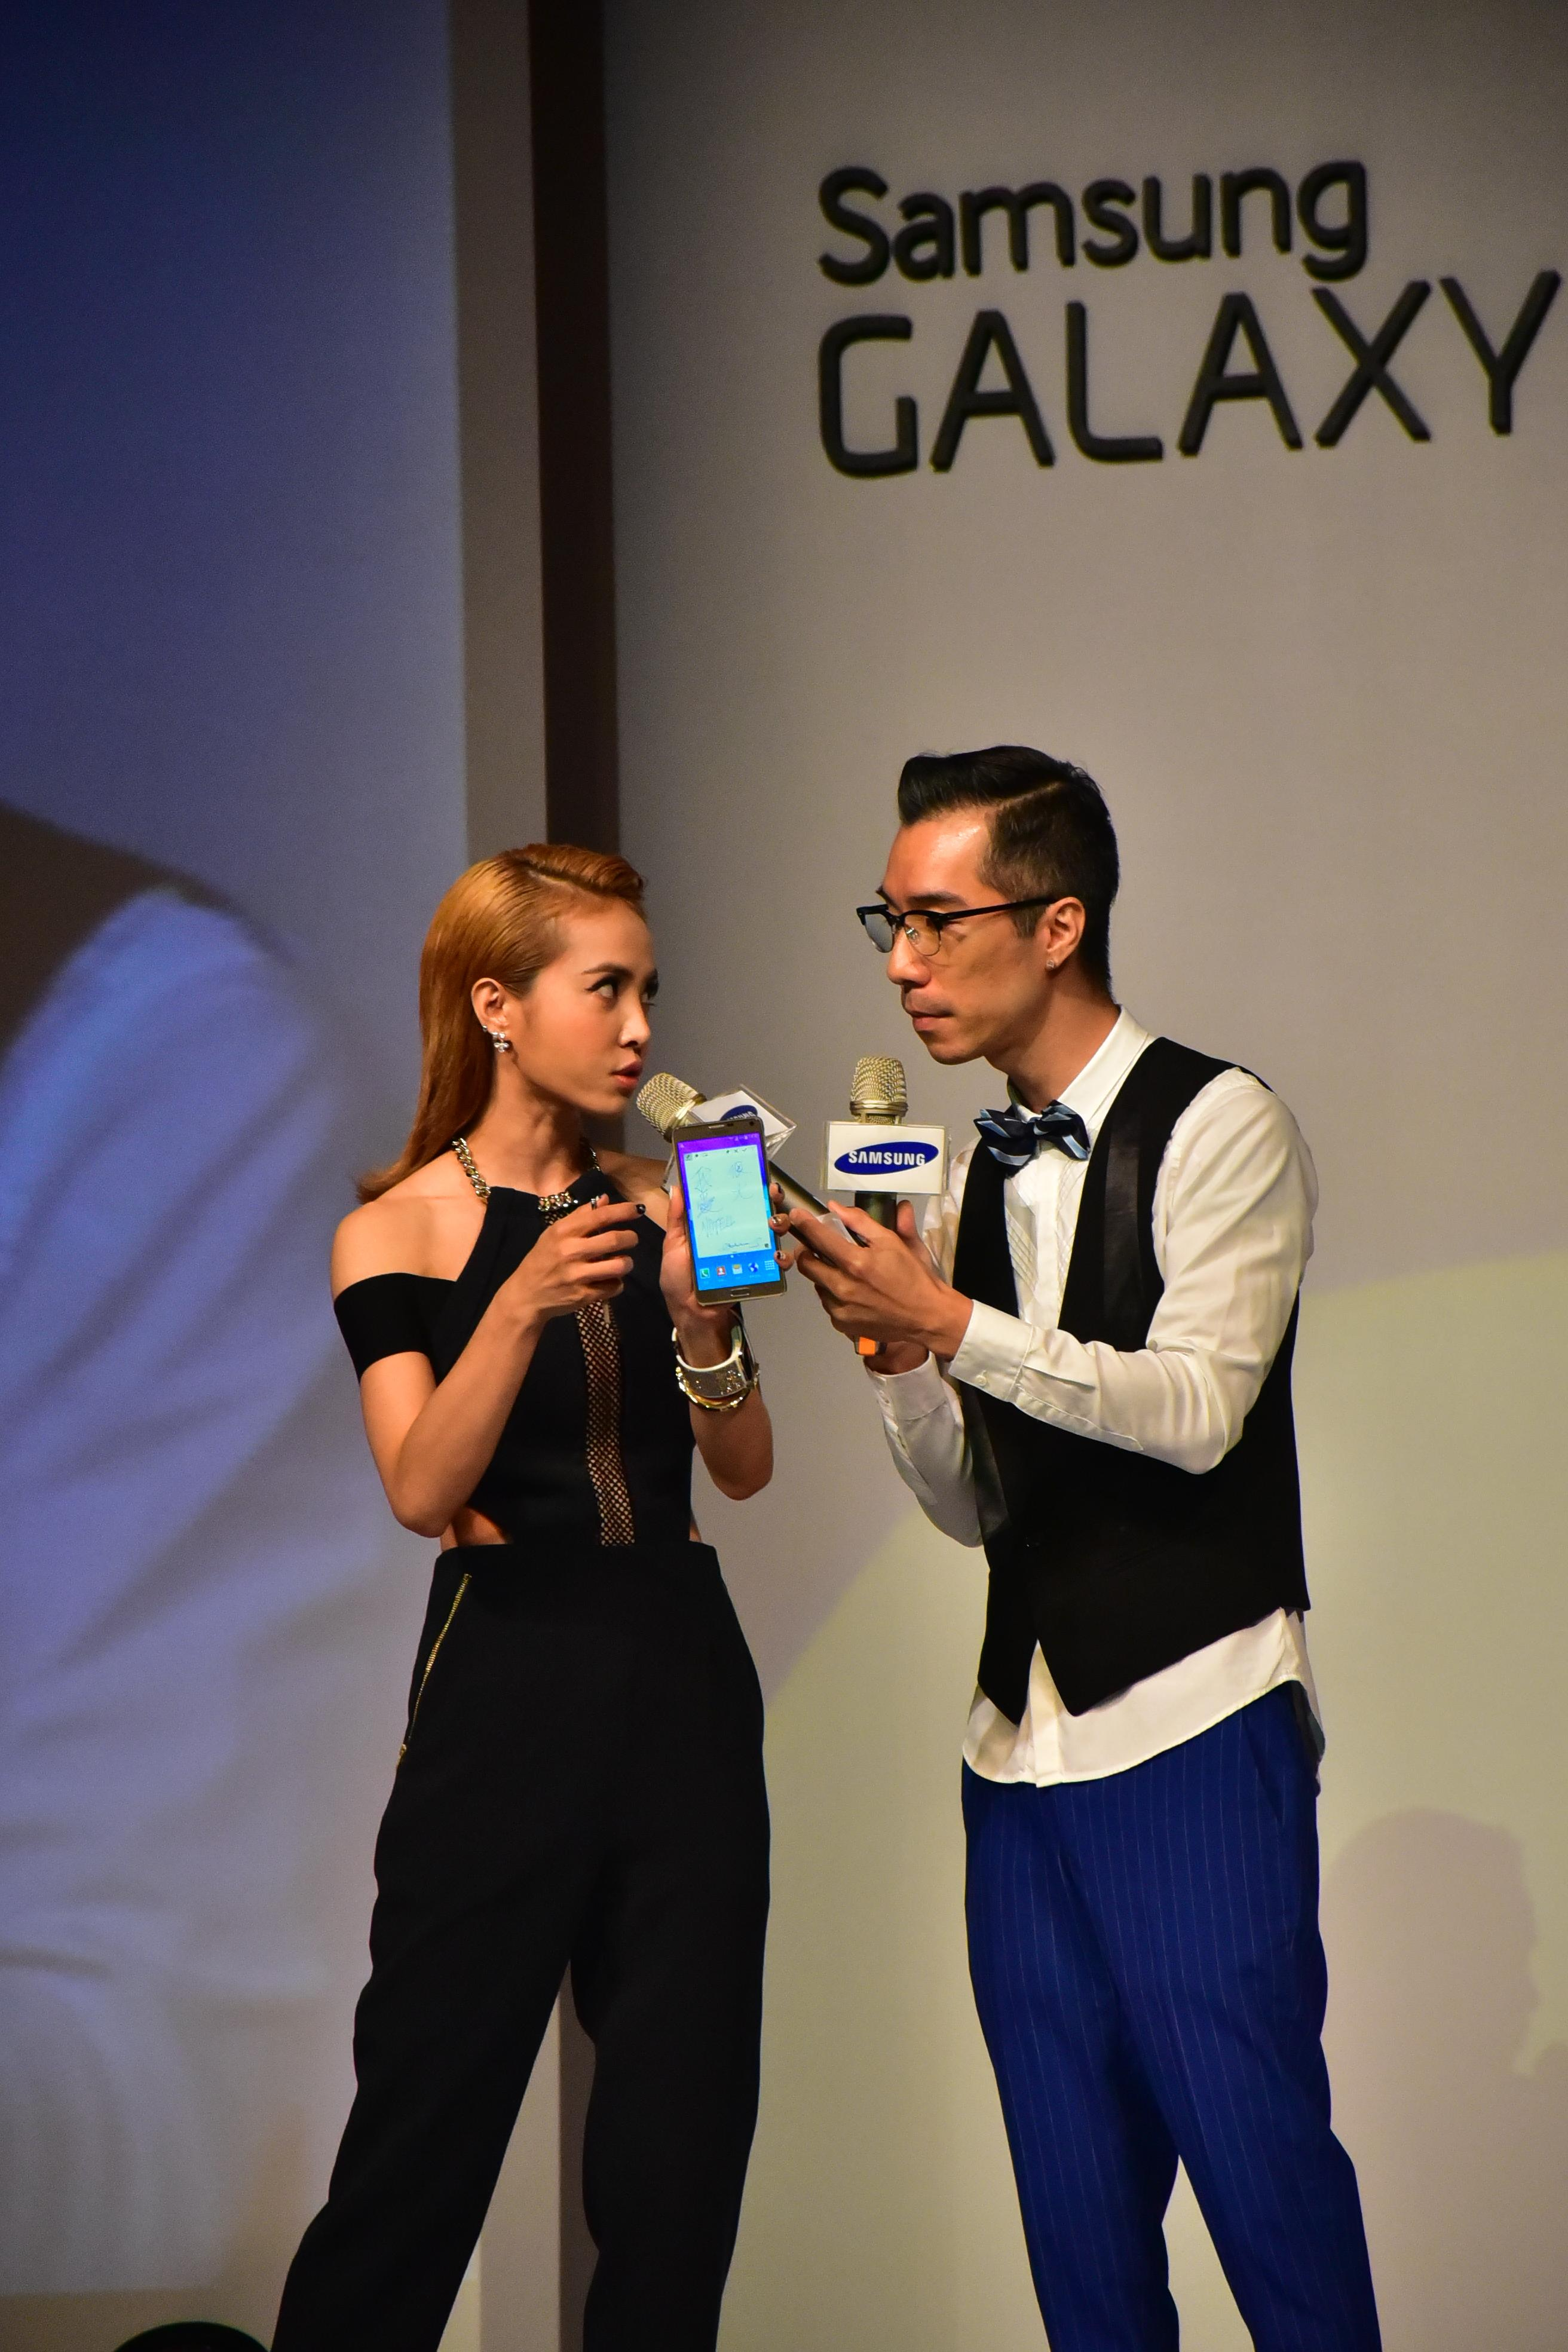 SAMSUNG GALAXY Note 4 with 歌后 蔡依林 !! - XFastest - DSC_2517.JPG